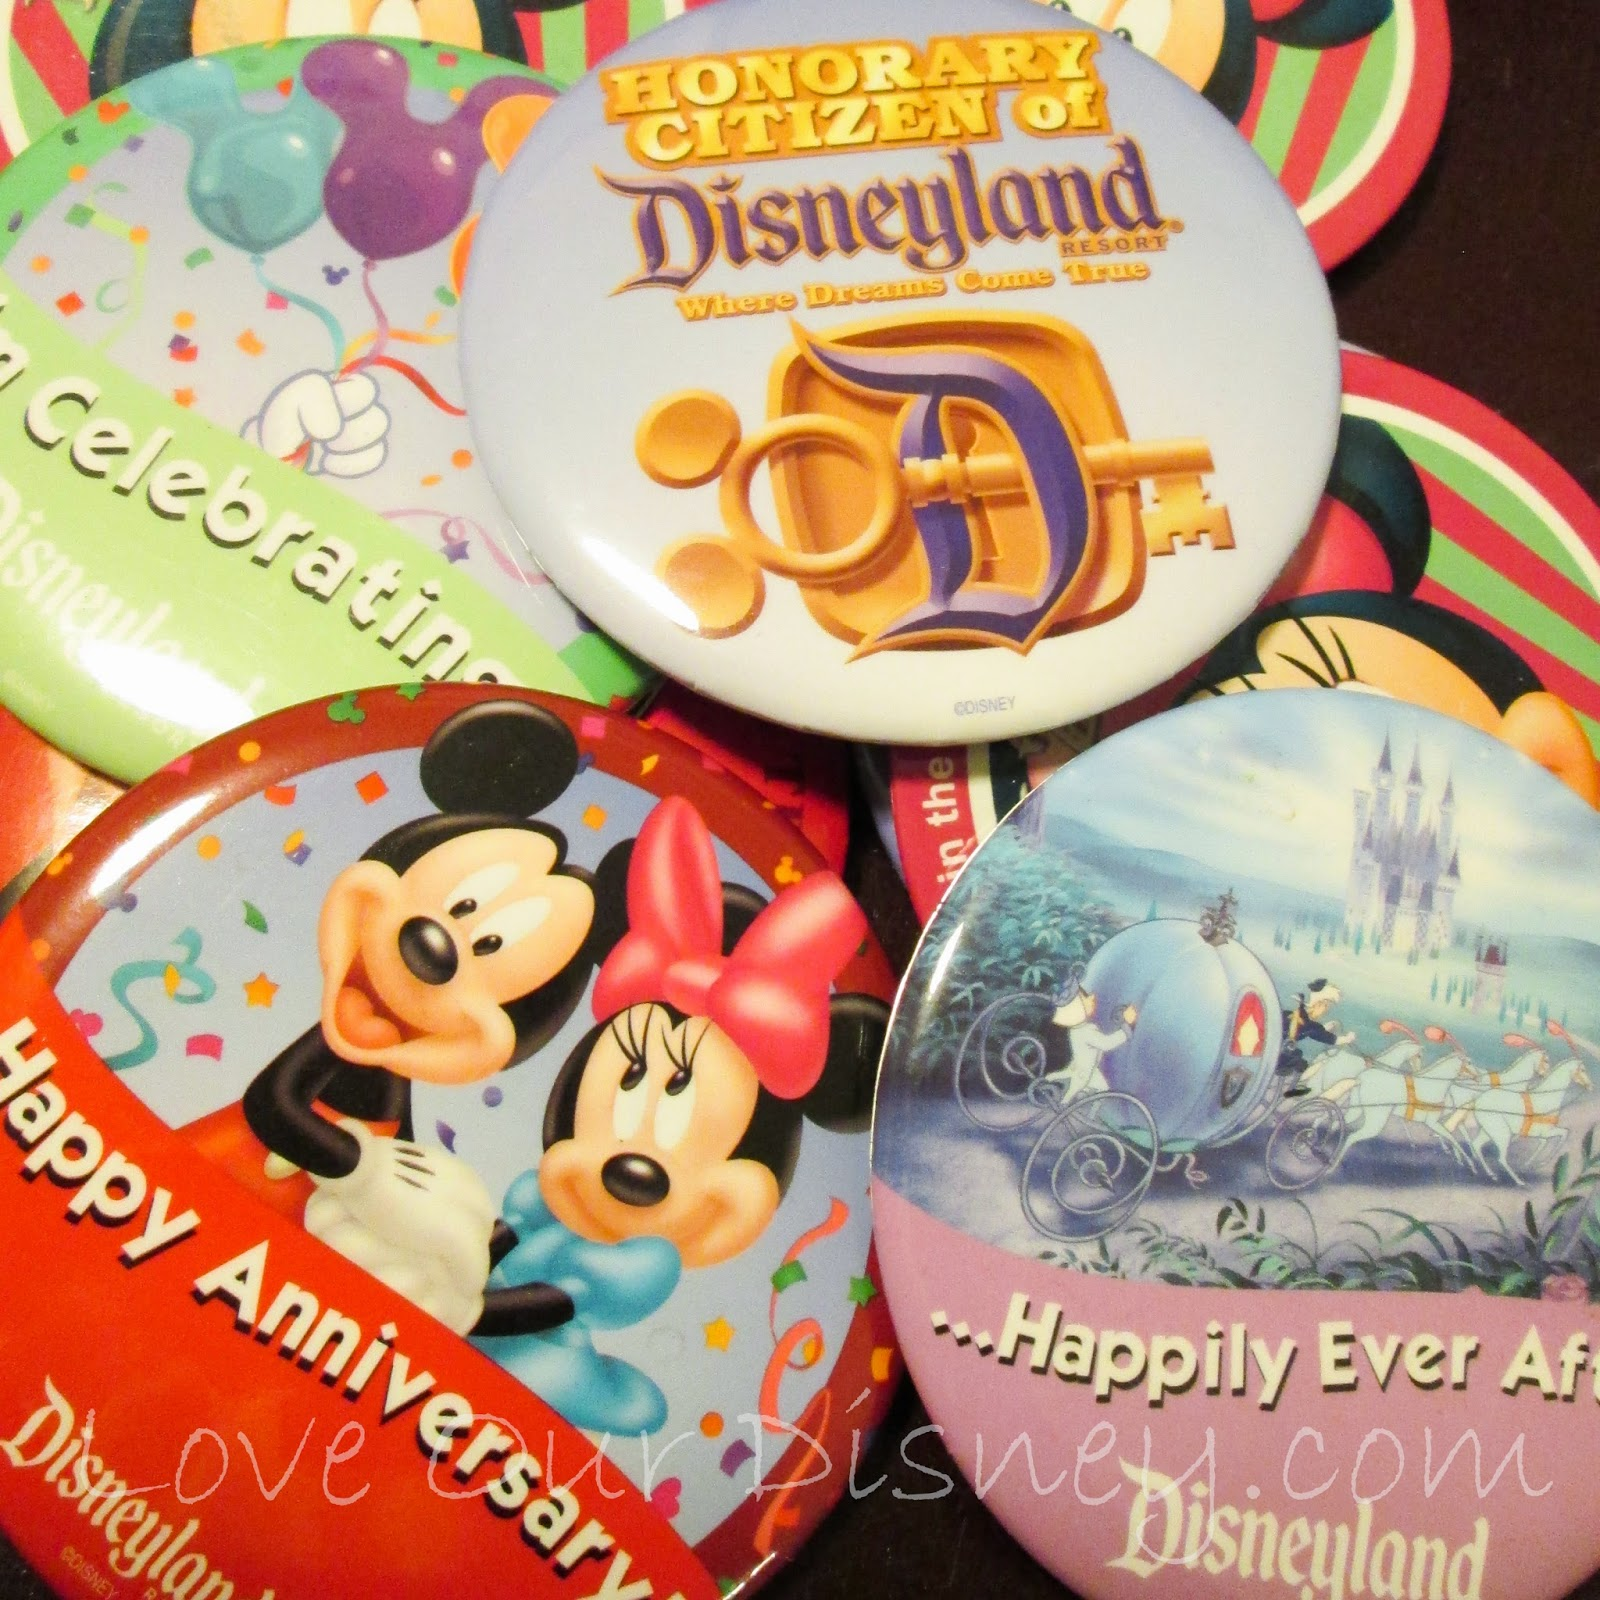 LoveOurDisney.com is letting you know what items you can get for free at Disneyland Resort. Did you know there were so many?